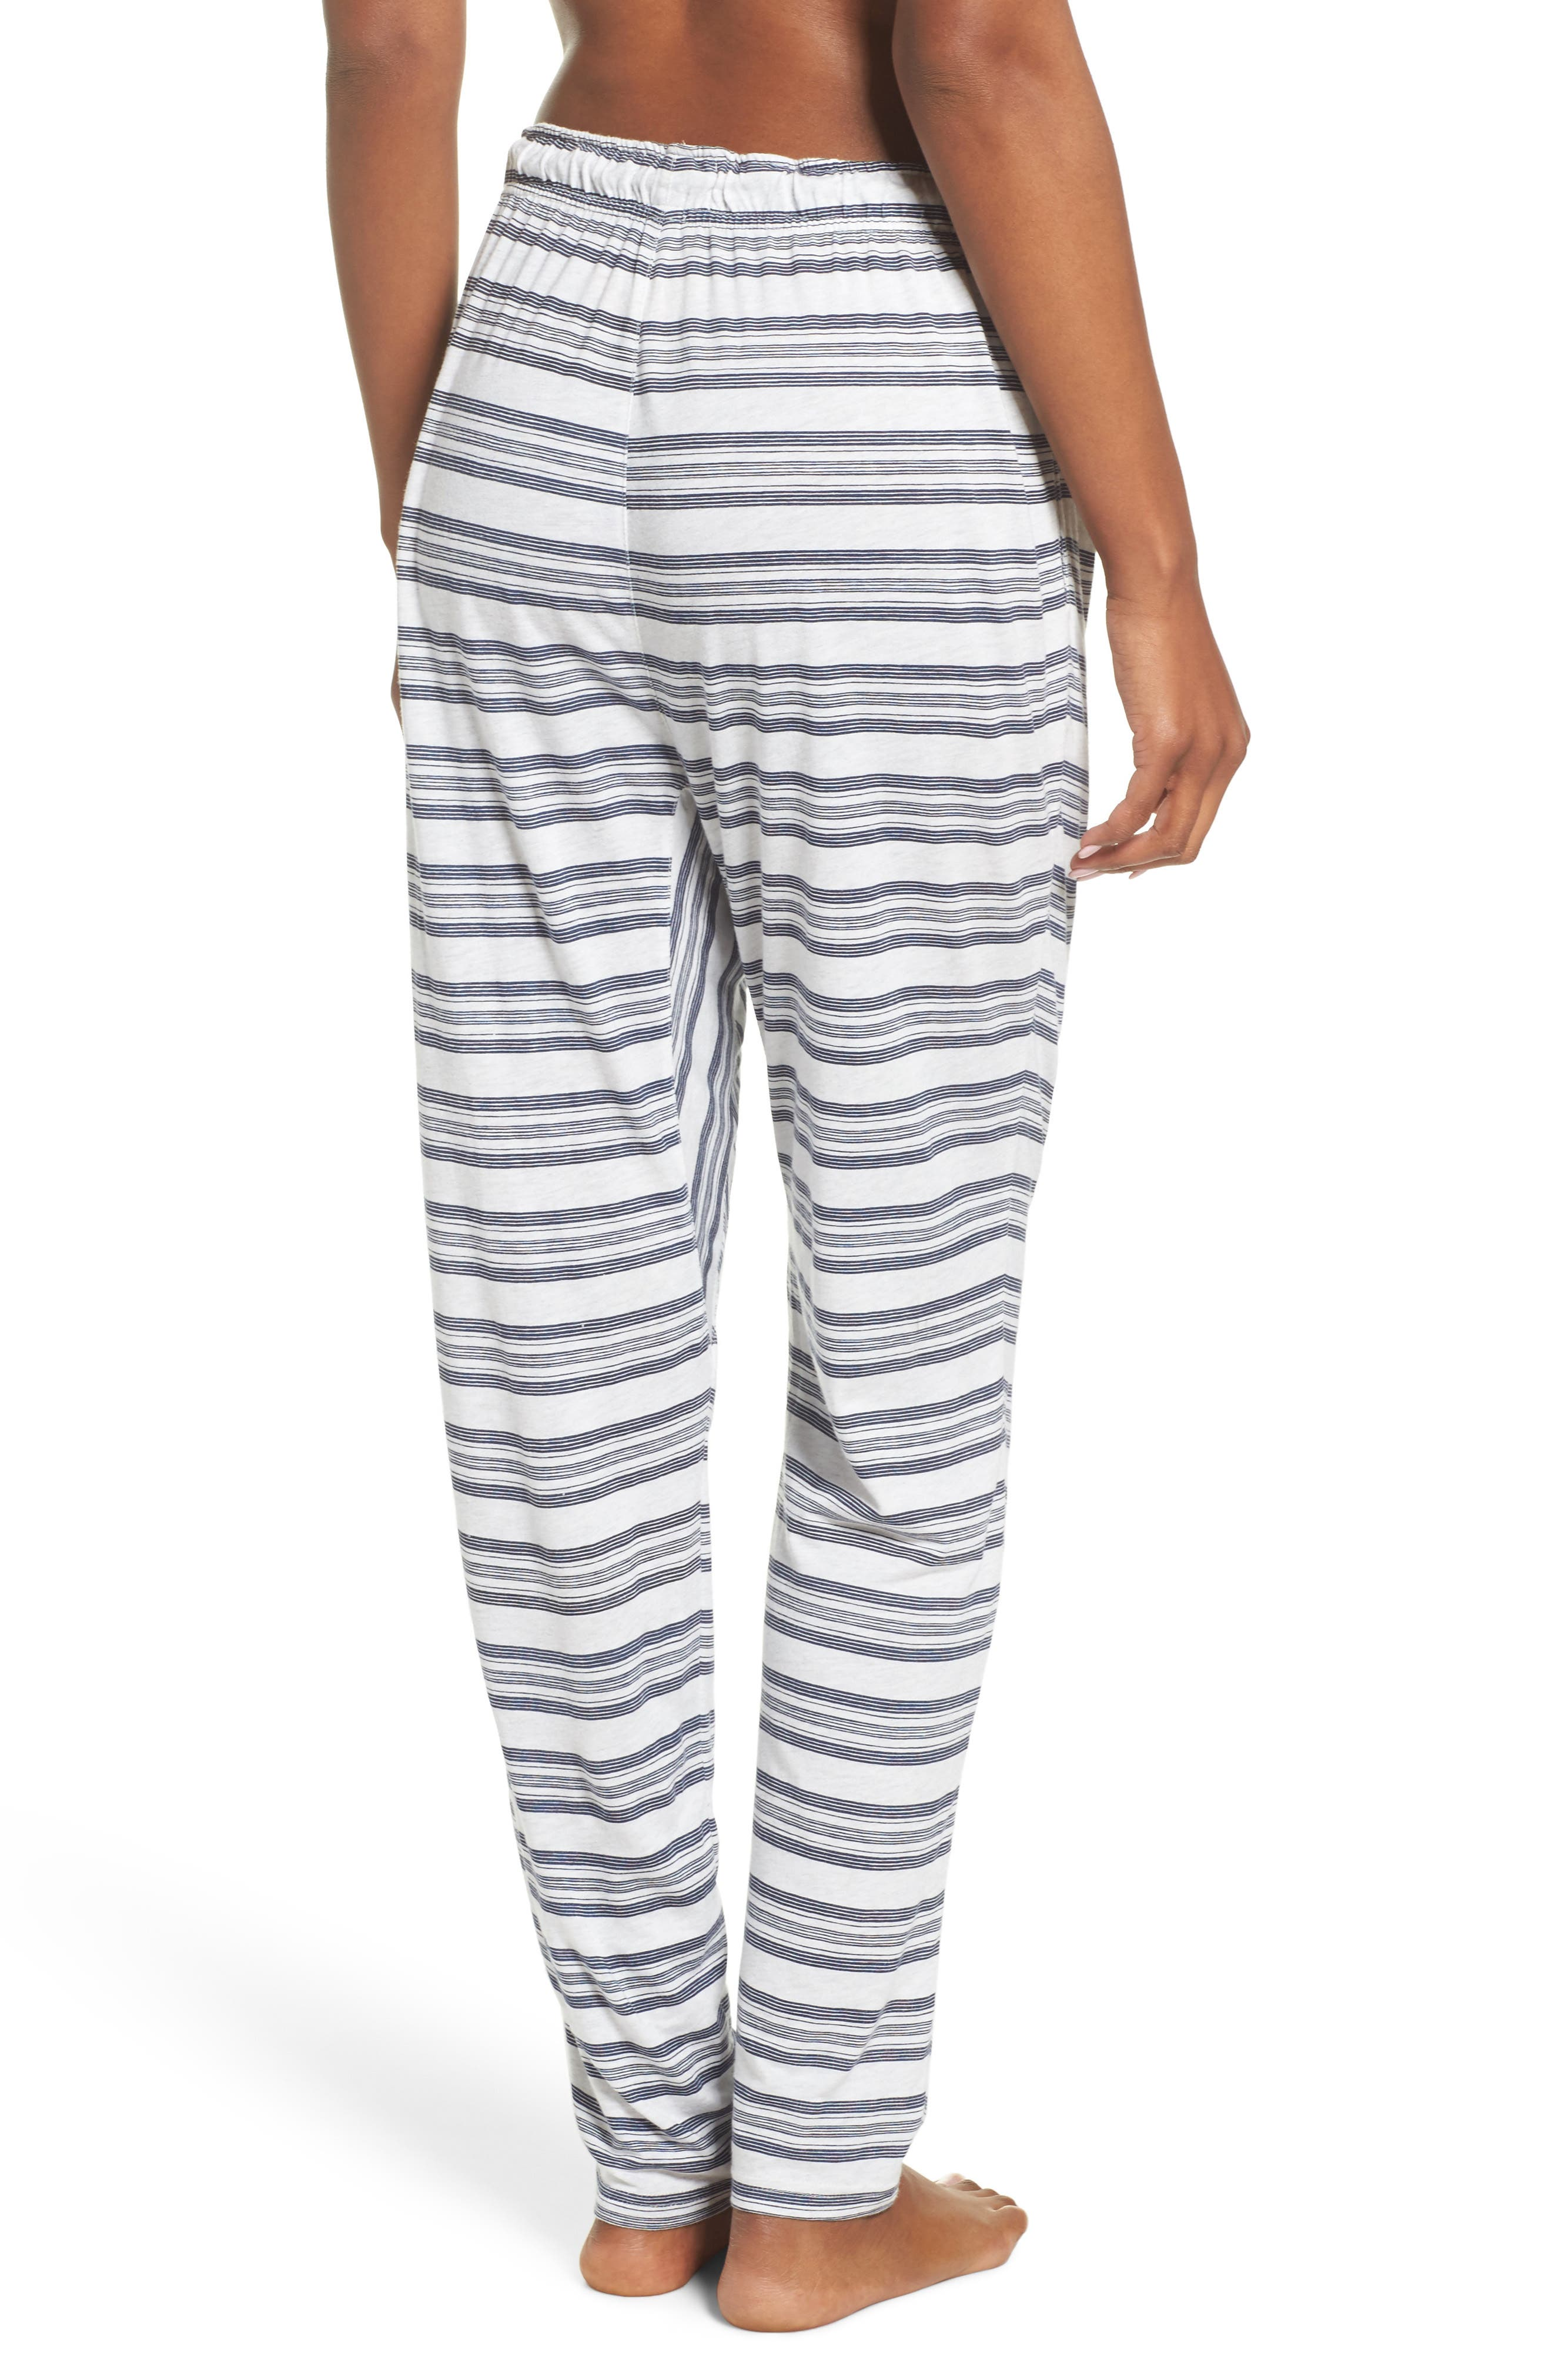 Alice Lounge Pants,                             Alternate thumbnail 3, color,                             Snow Marle Stripe